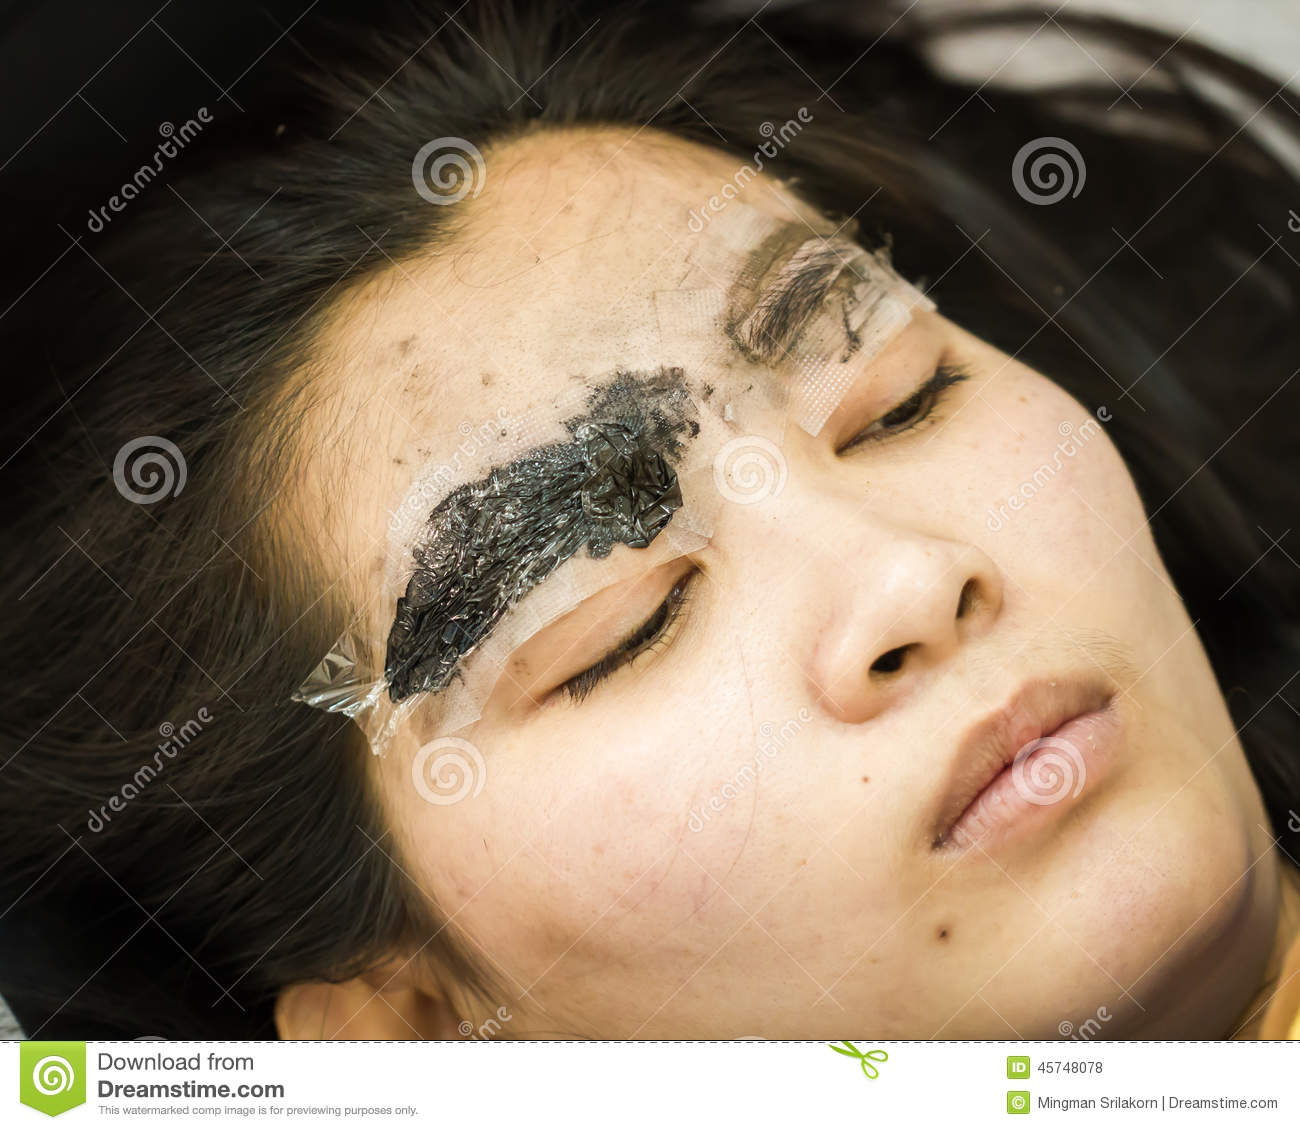 Makeup eyebrow tattooing pretty asian woman face stock for Asian face tattoos